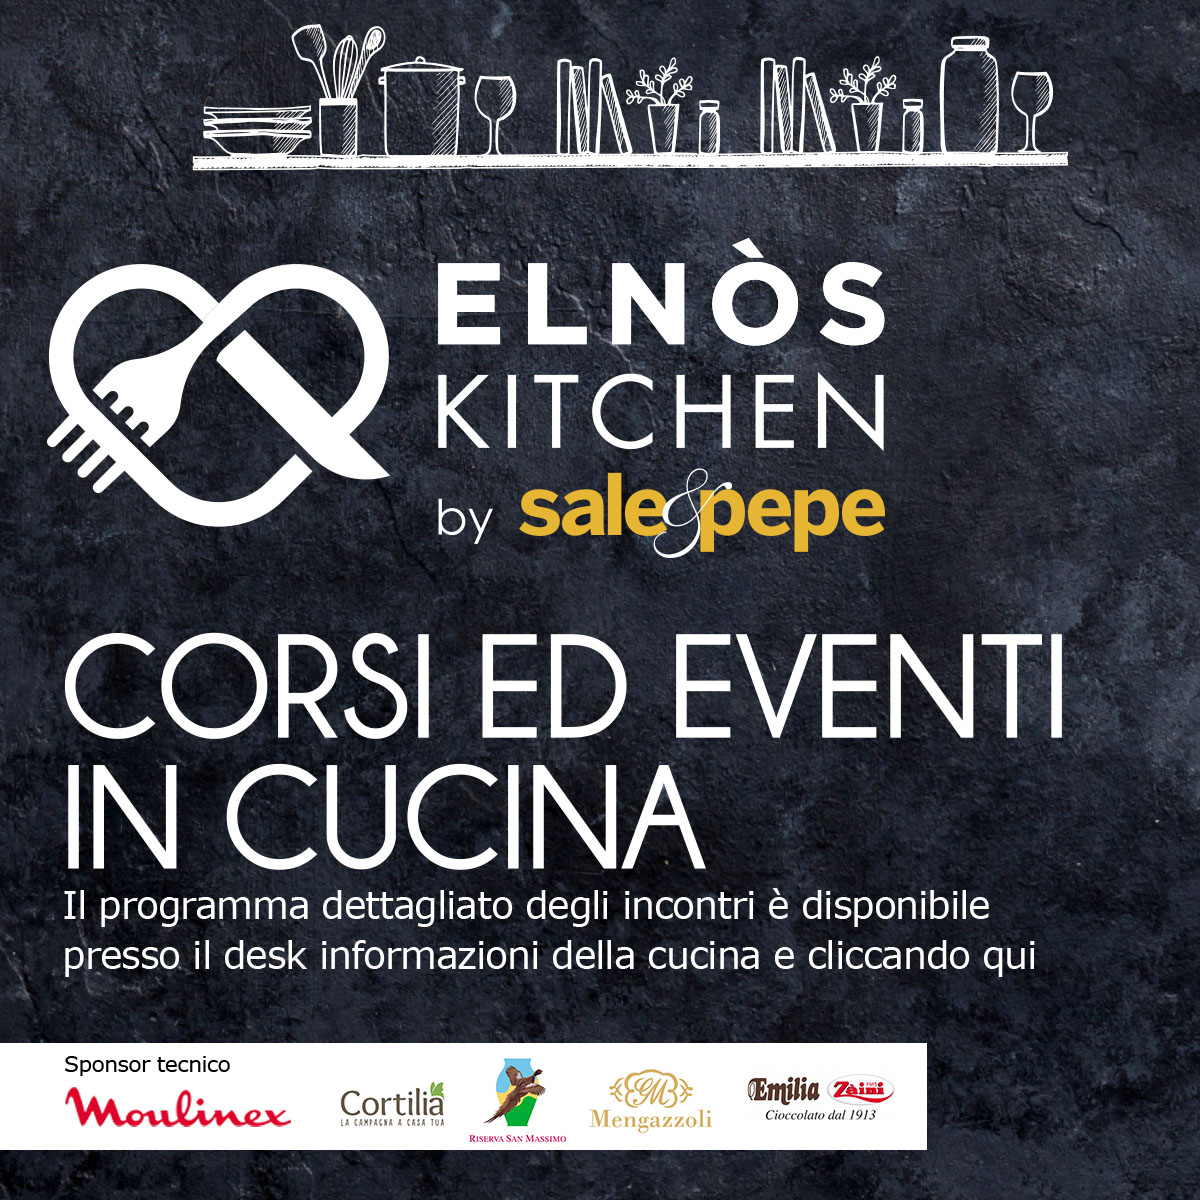 elnòs kitchen by sale & pepe